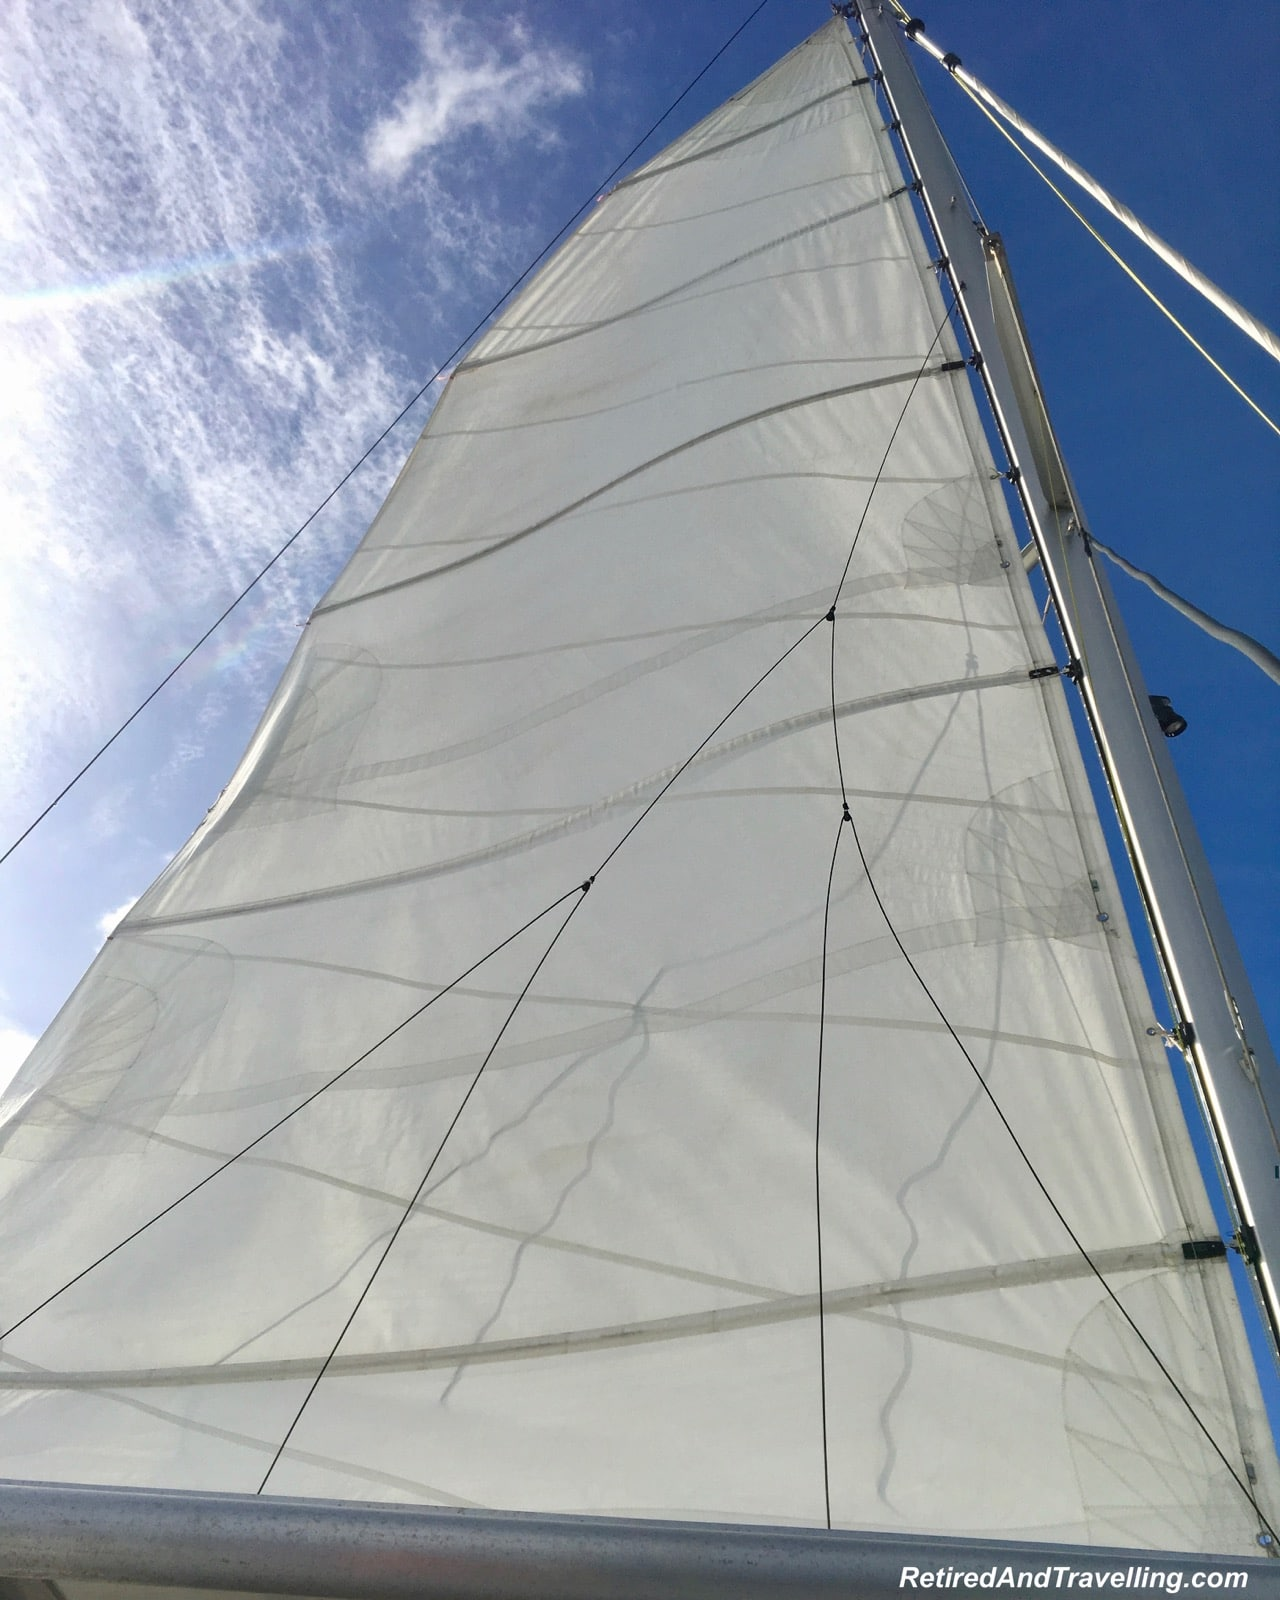 Catamaran Sails - Catamaran Adventure In St. Vincent.jpg